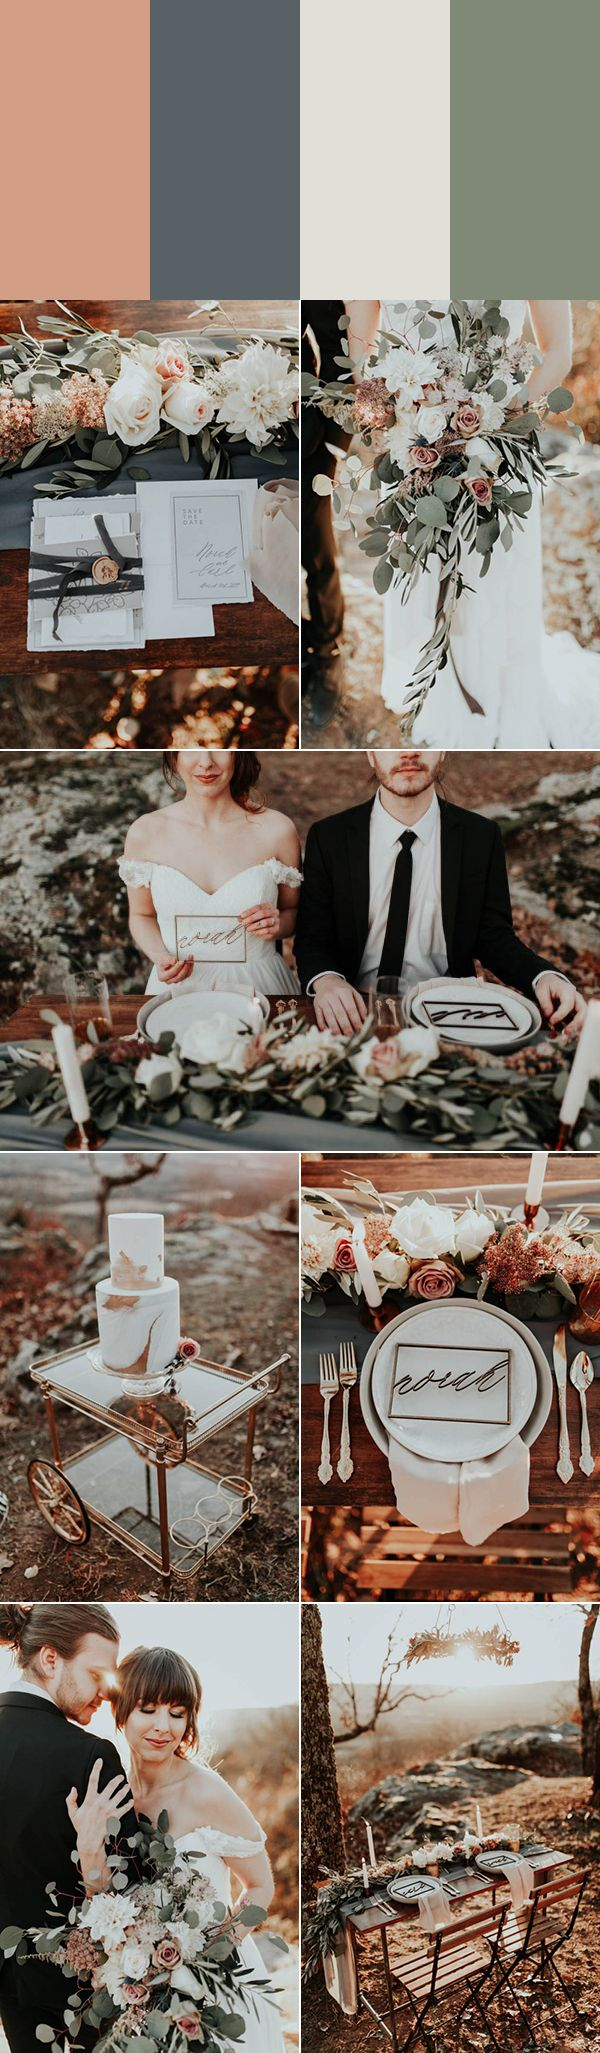 Rose gold, dusty blue, ivory, and sage can make any spring wedding that much more magical | photo by Luke and Mallory, event and floral design by Kaleb Norman James, cake by Cakes by Felicitations, stationery by Gabriel Pattenhouse, groom's apparel by Bonobos